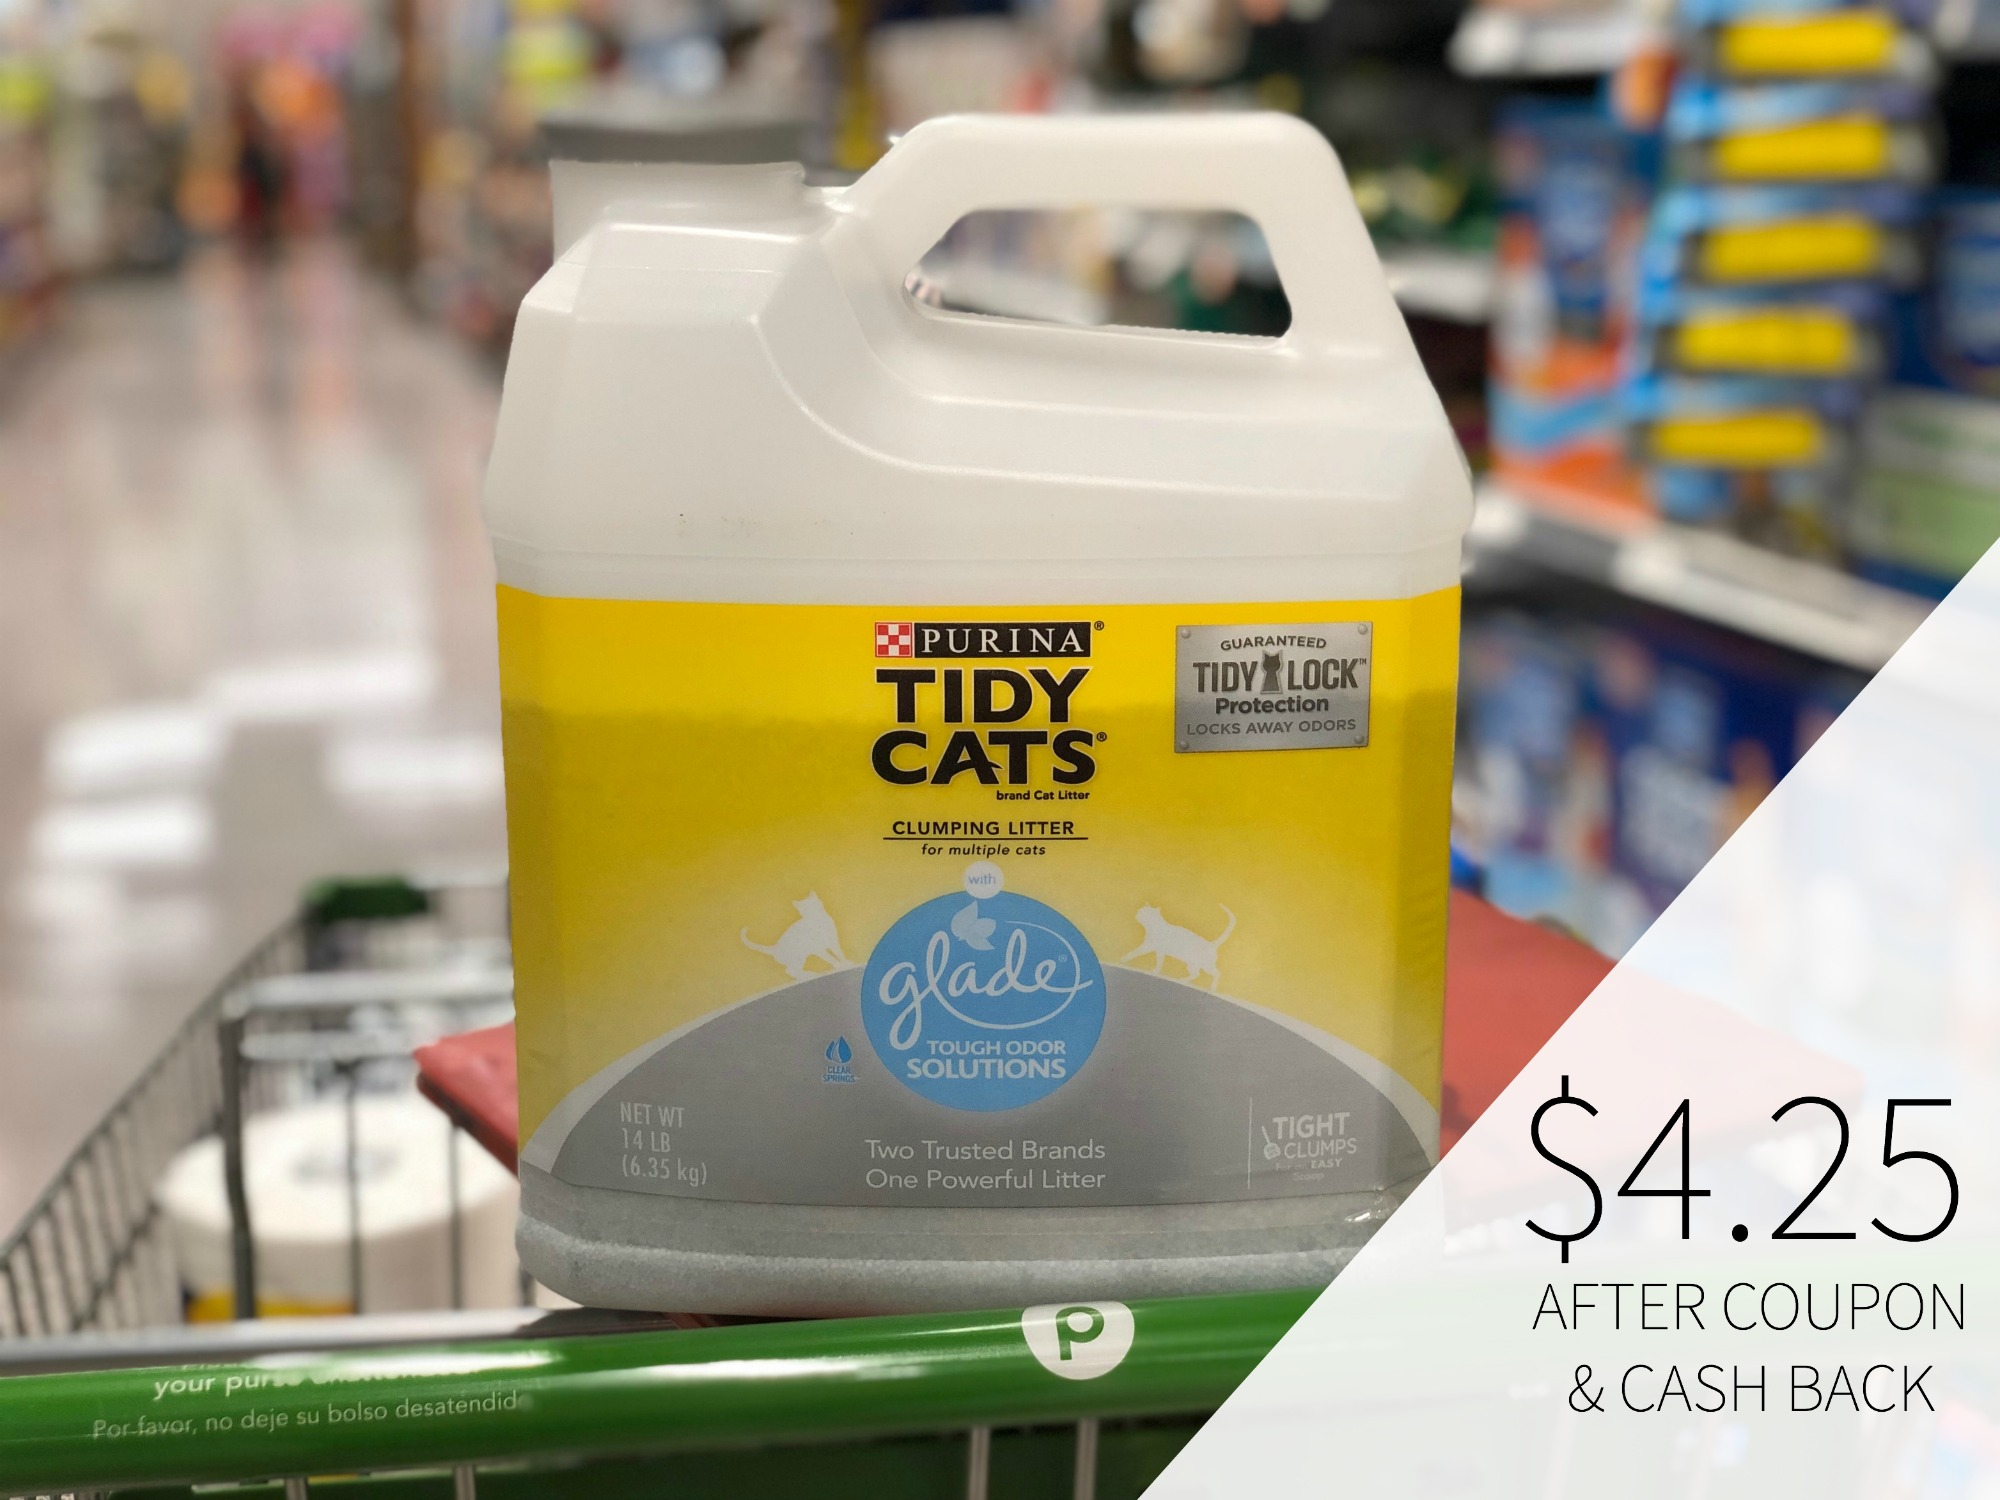 Purina Tidy Cats Litter As Low As $3.70 At Publix on I Heart Publix 1